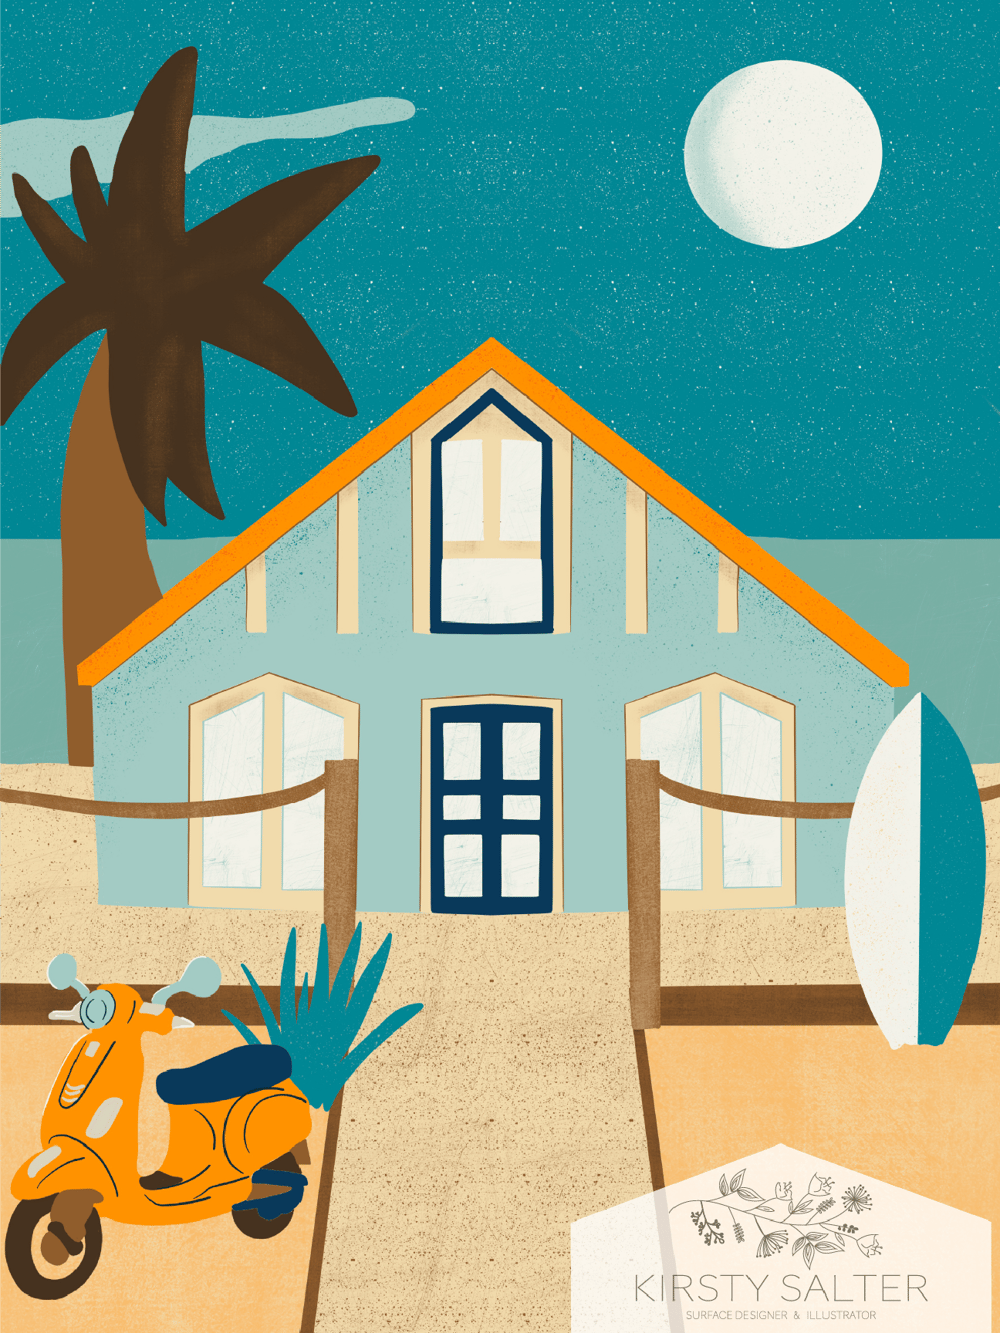 Evening Surfers Paradise Home - image 1 - student project